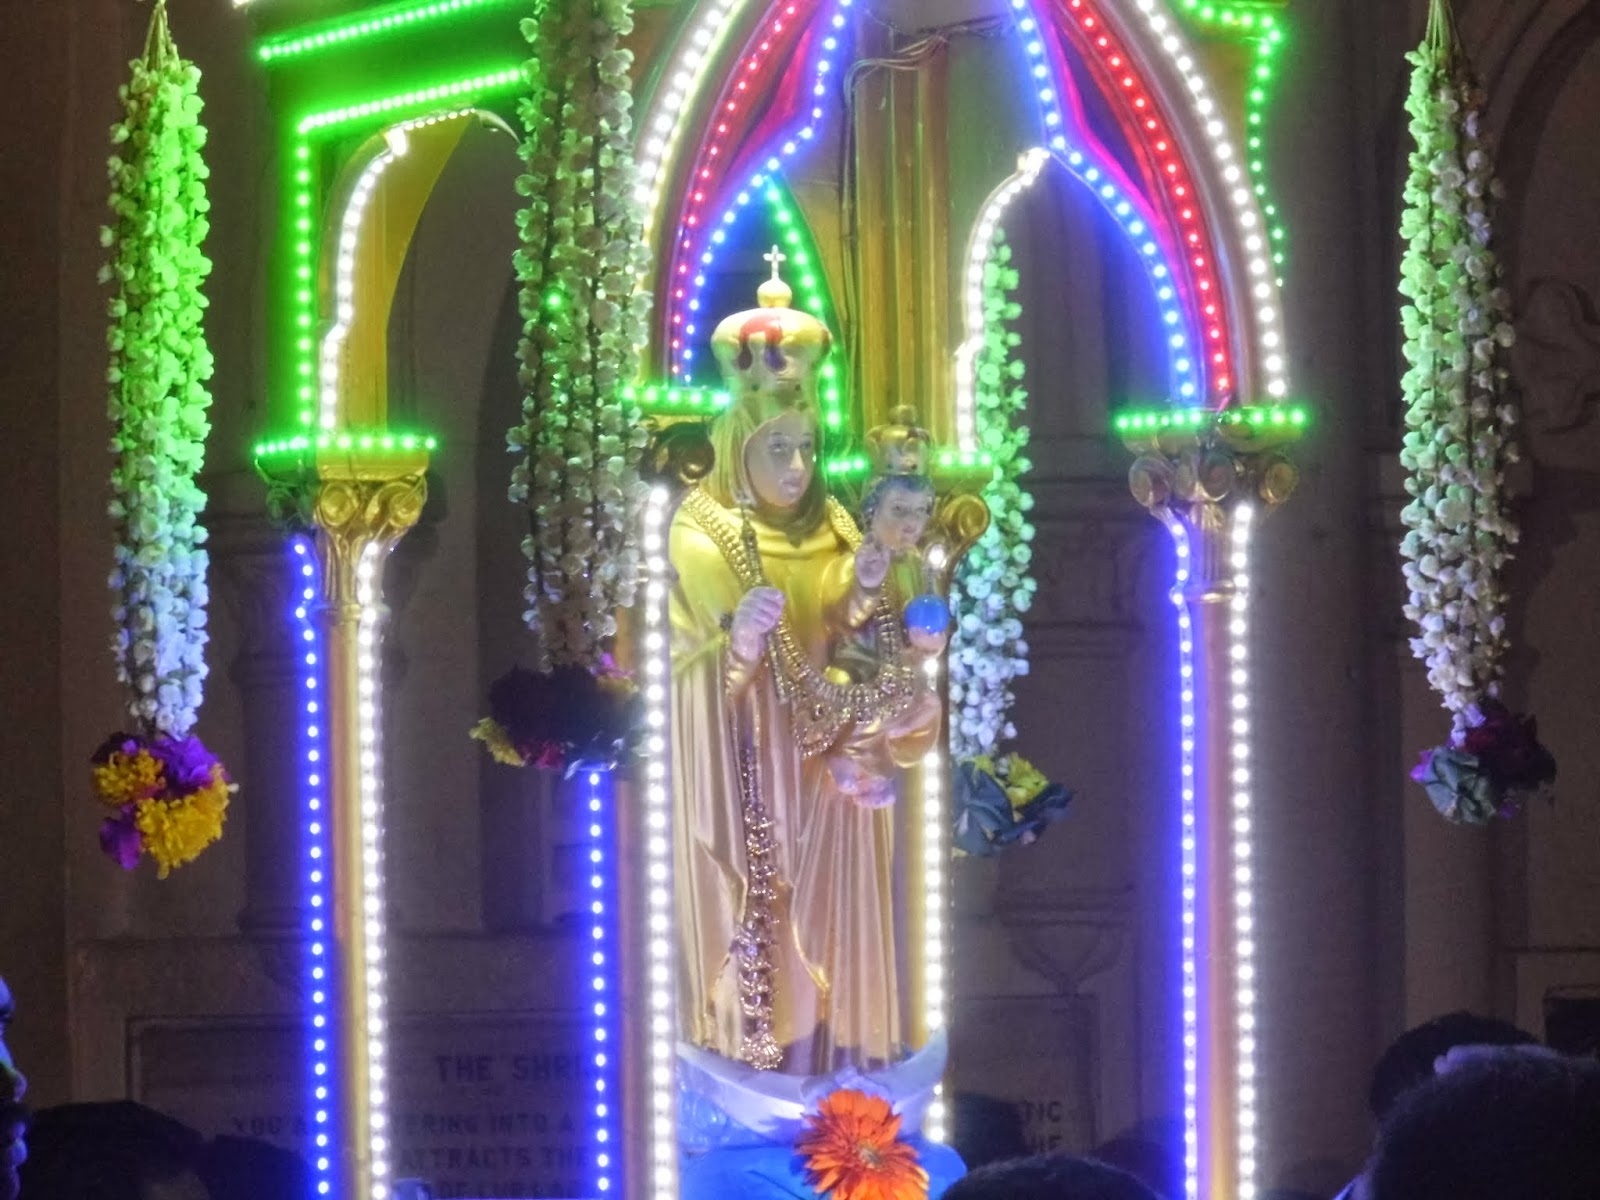 Vailankanni India  City pictures : dec to the shrine of our lady of vailankanni in tamil nadu india from ...